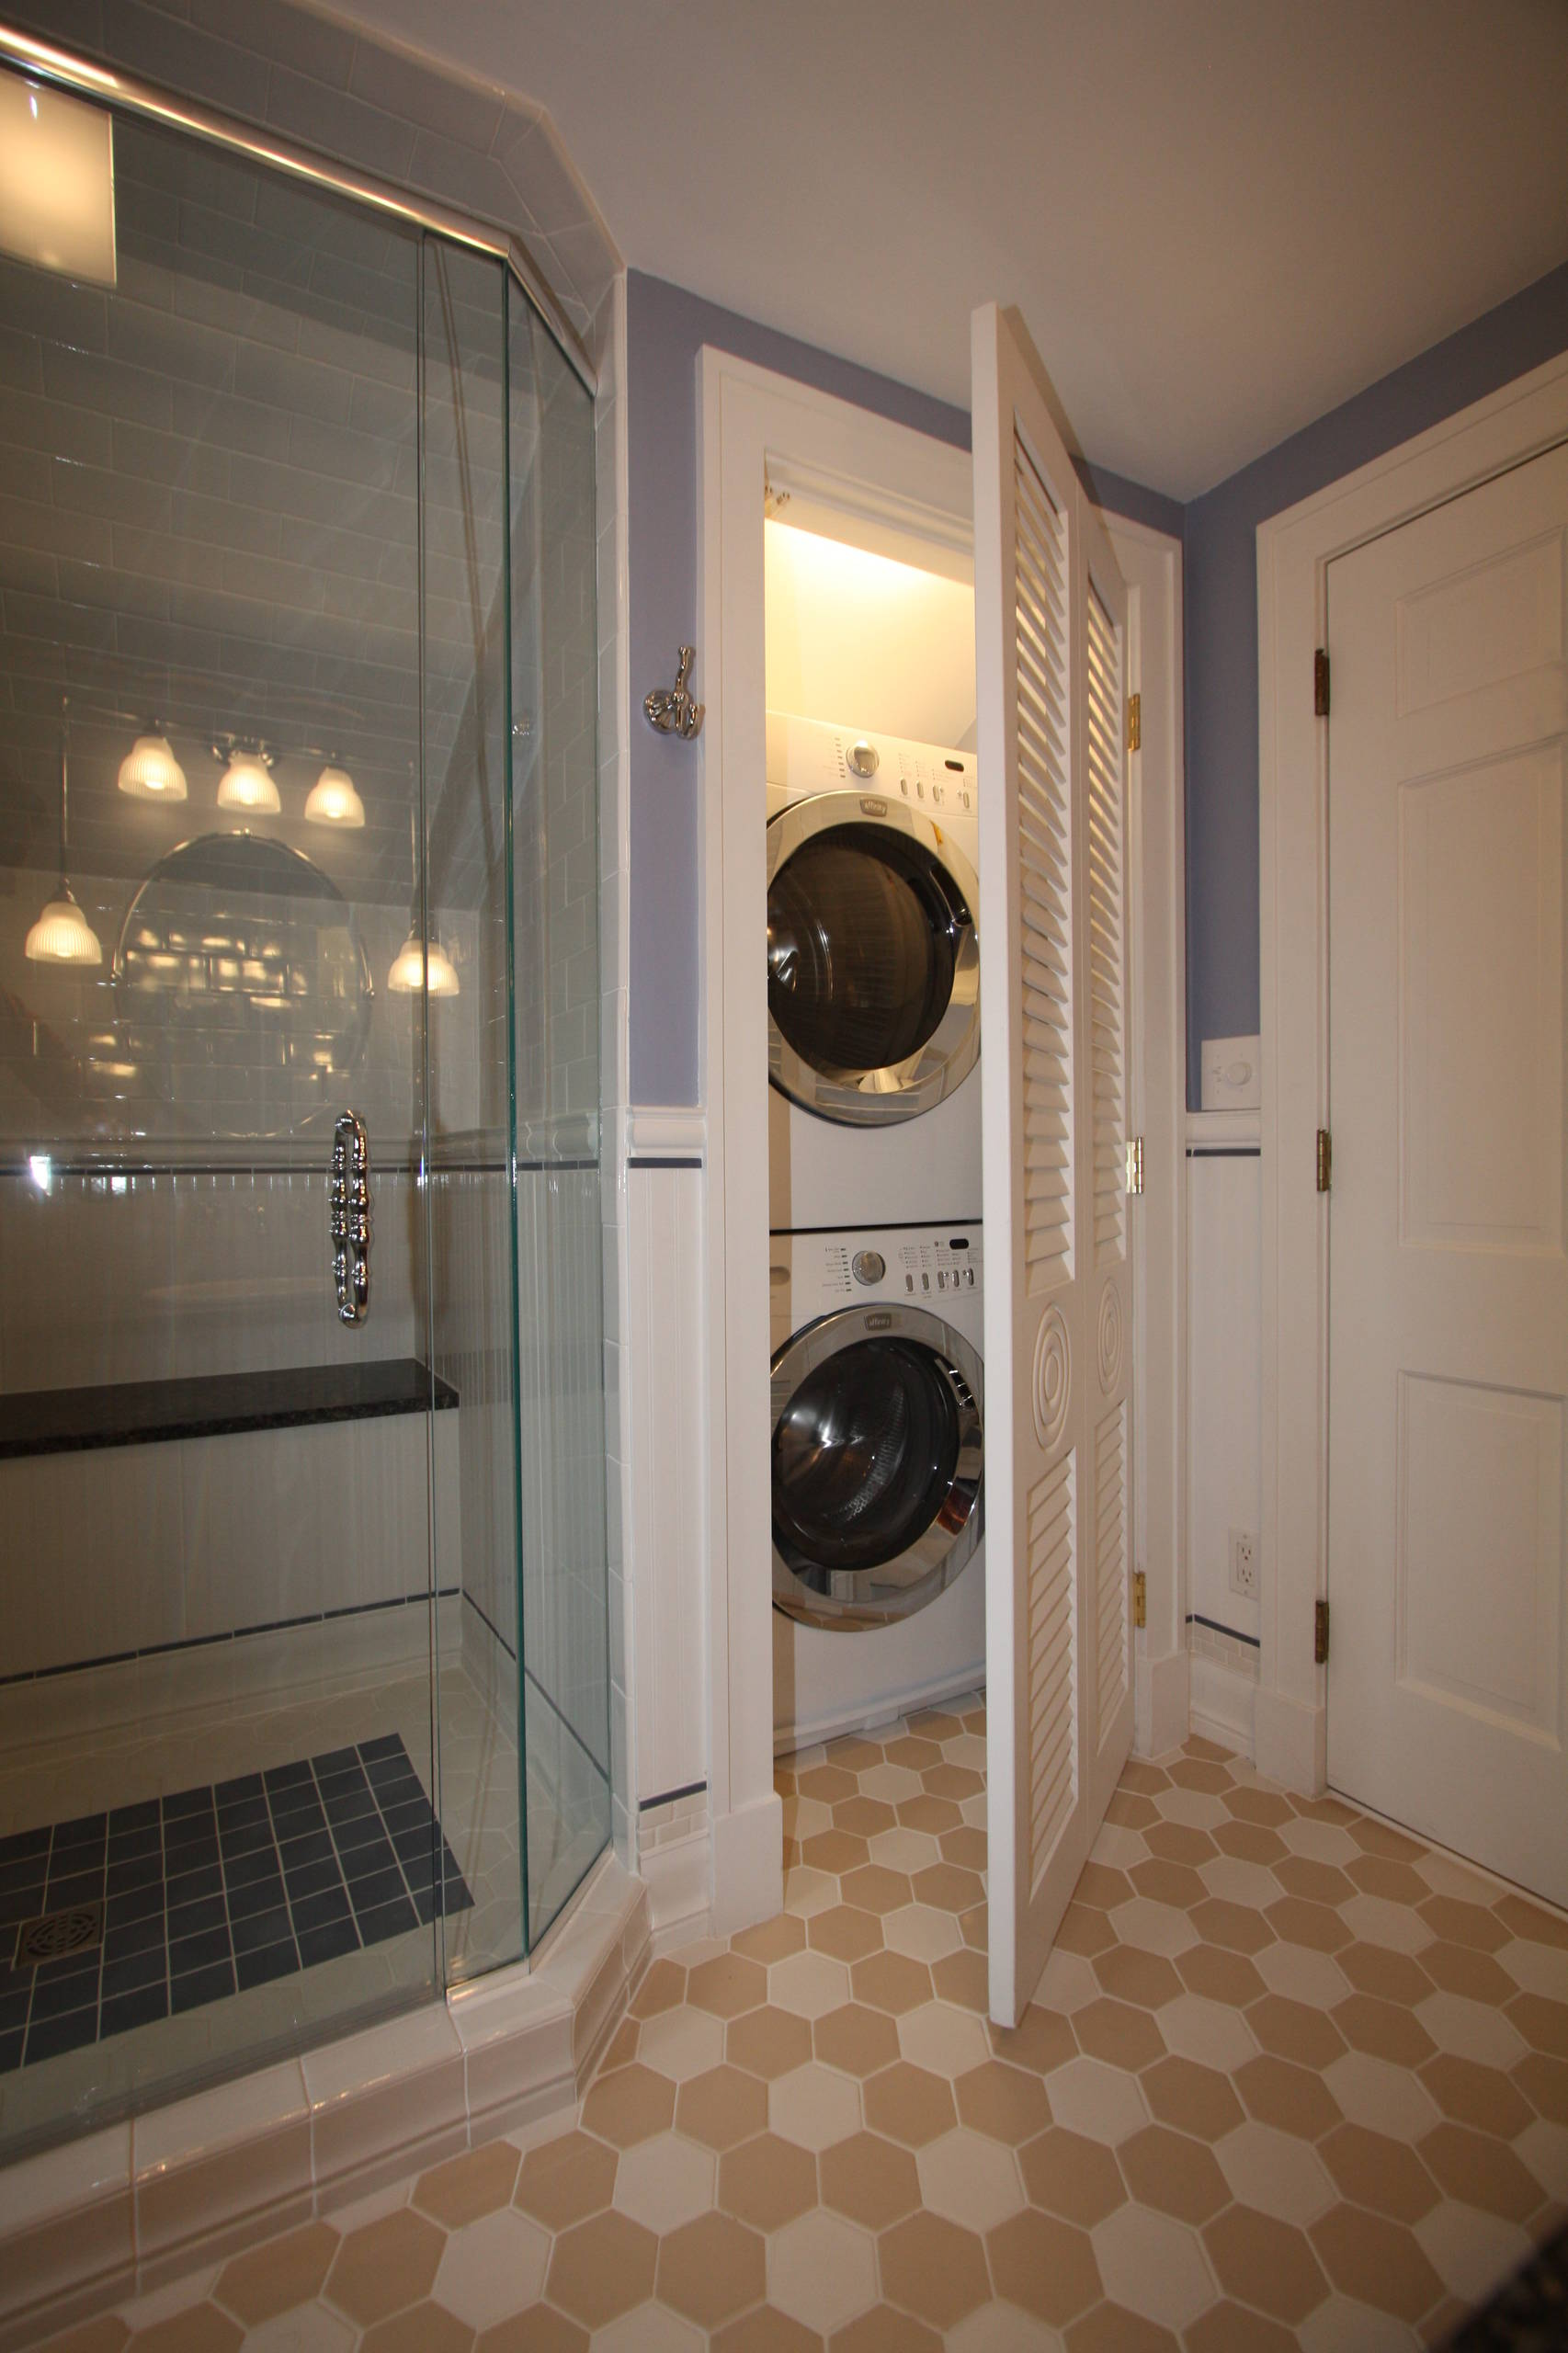 75 Beautiful Bathroom Laundry Room Pictures Ideas February 2021 Houzz